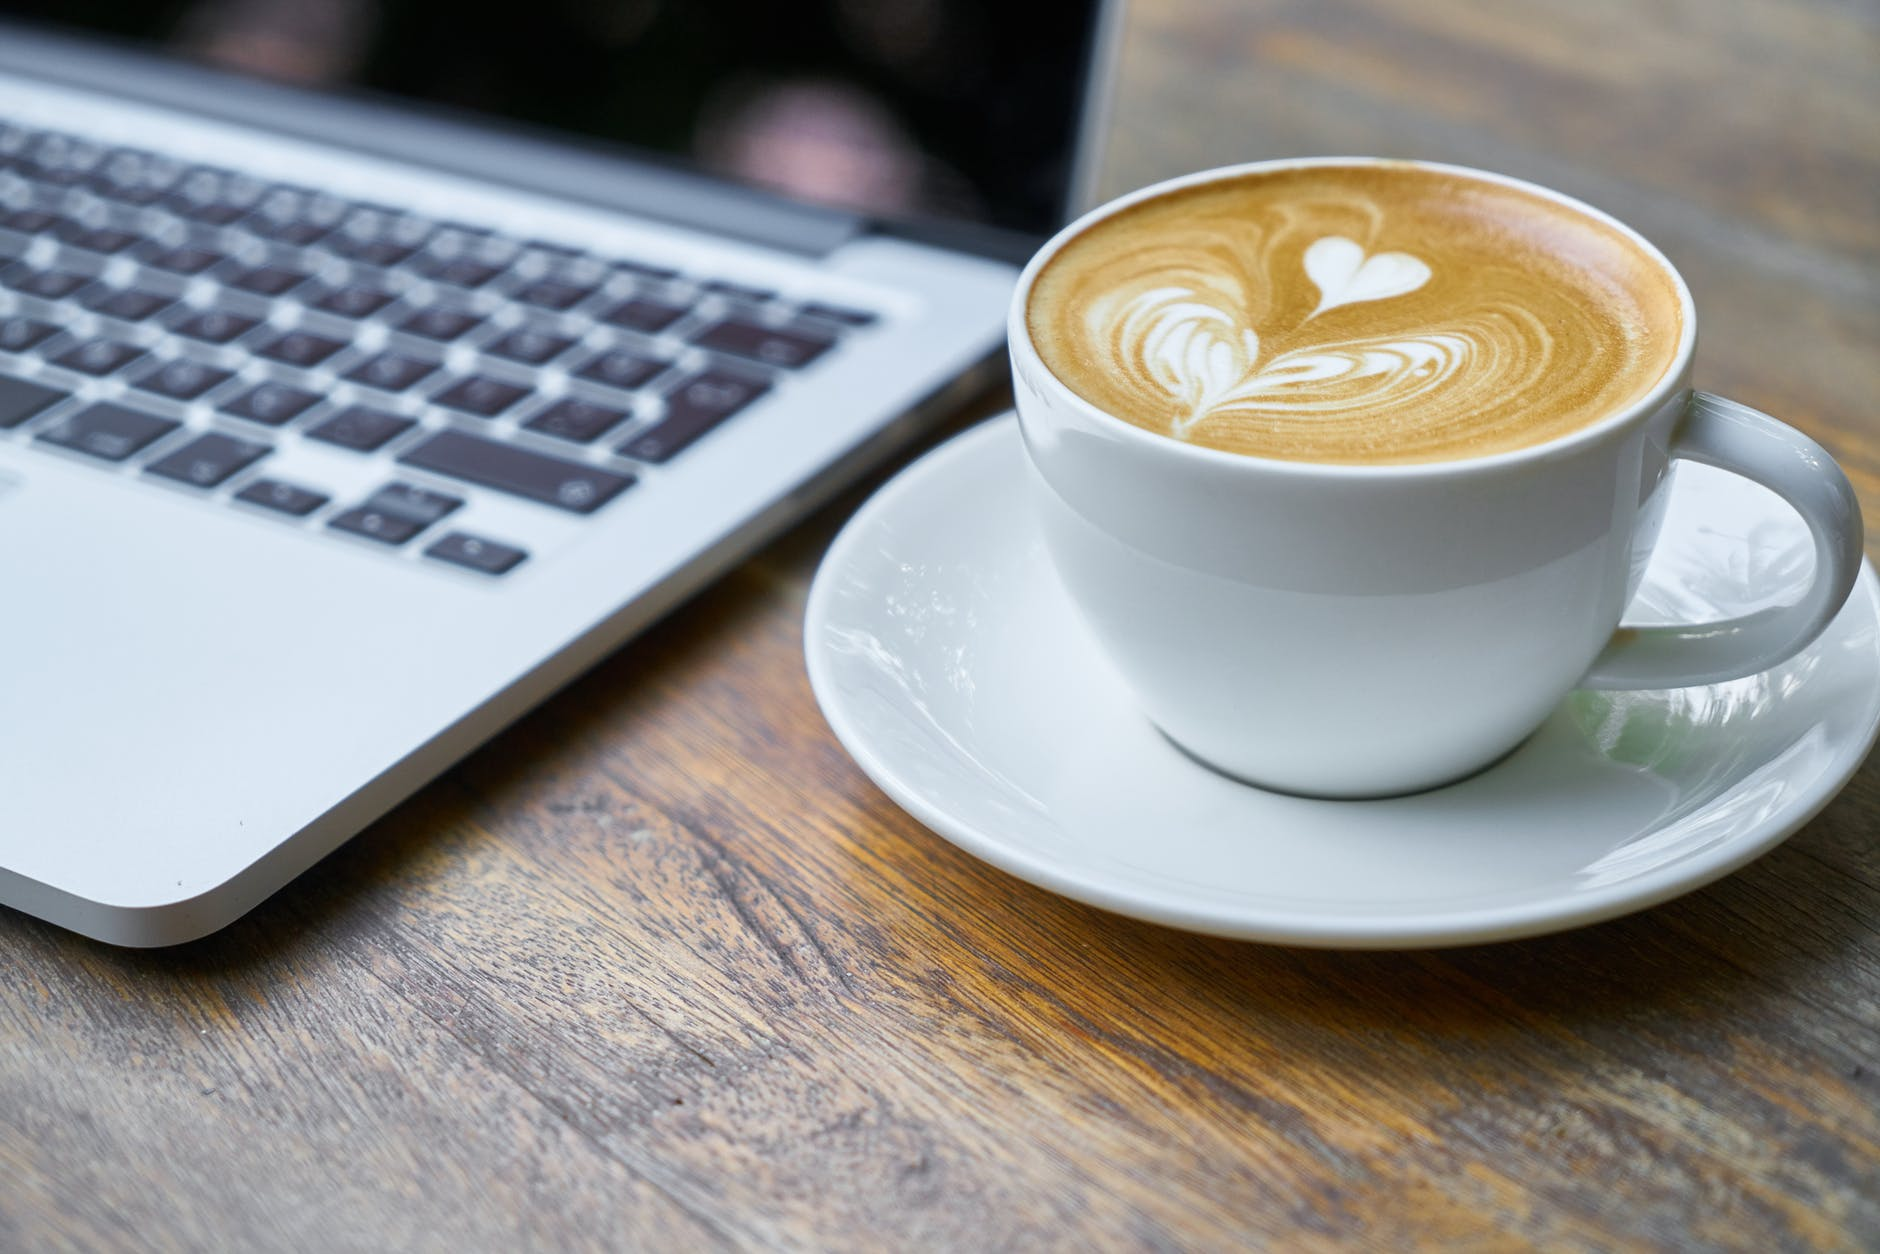 Fancy coffee in a cup and saucer on a wooden table next to a laptop.